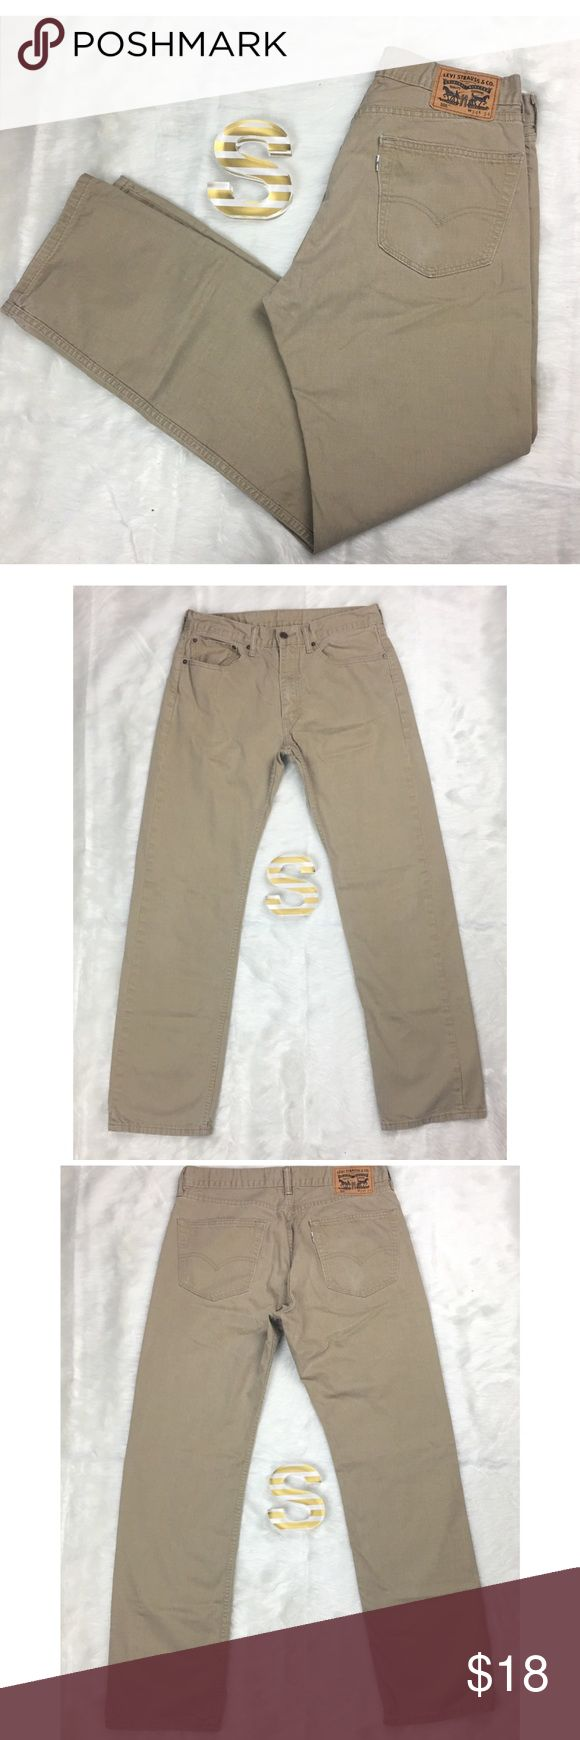 "Levi Strauss Mens Khaki Pants Size 34x34 Levi Strauss men's khaki pants size 34x34   Measurements- Waist: 34"" Rise: 11"" Inseam: 32""    Customer service is my #1 priority! I strive to not only meet, but to exceed the standard. If for any reason you are unhappy with your order, I will make it right!     Thank you for supporting small business! Signature by Levi Strauss Pants Chinos & Khakis"